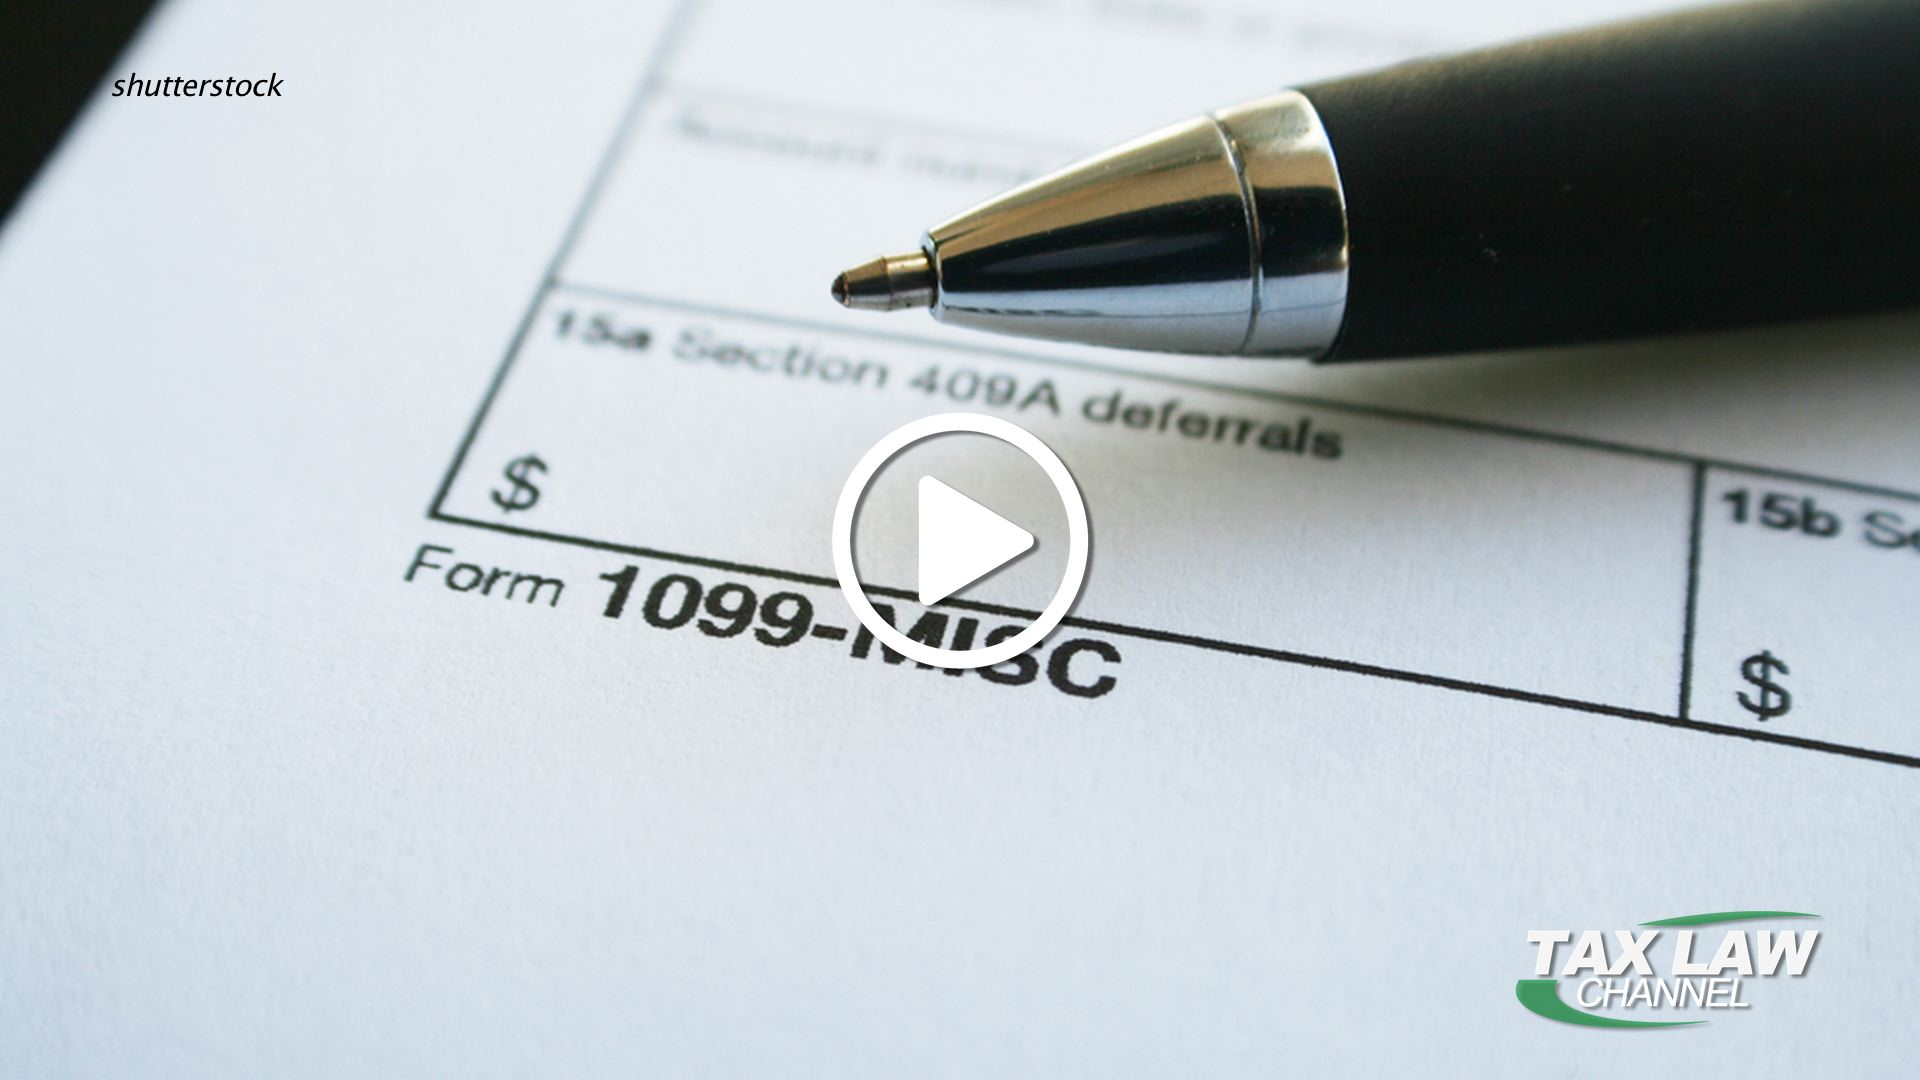 How To Deal With Irs Forms 1099 Including Missing Ones Rob Wood